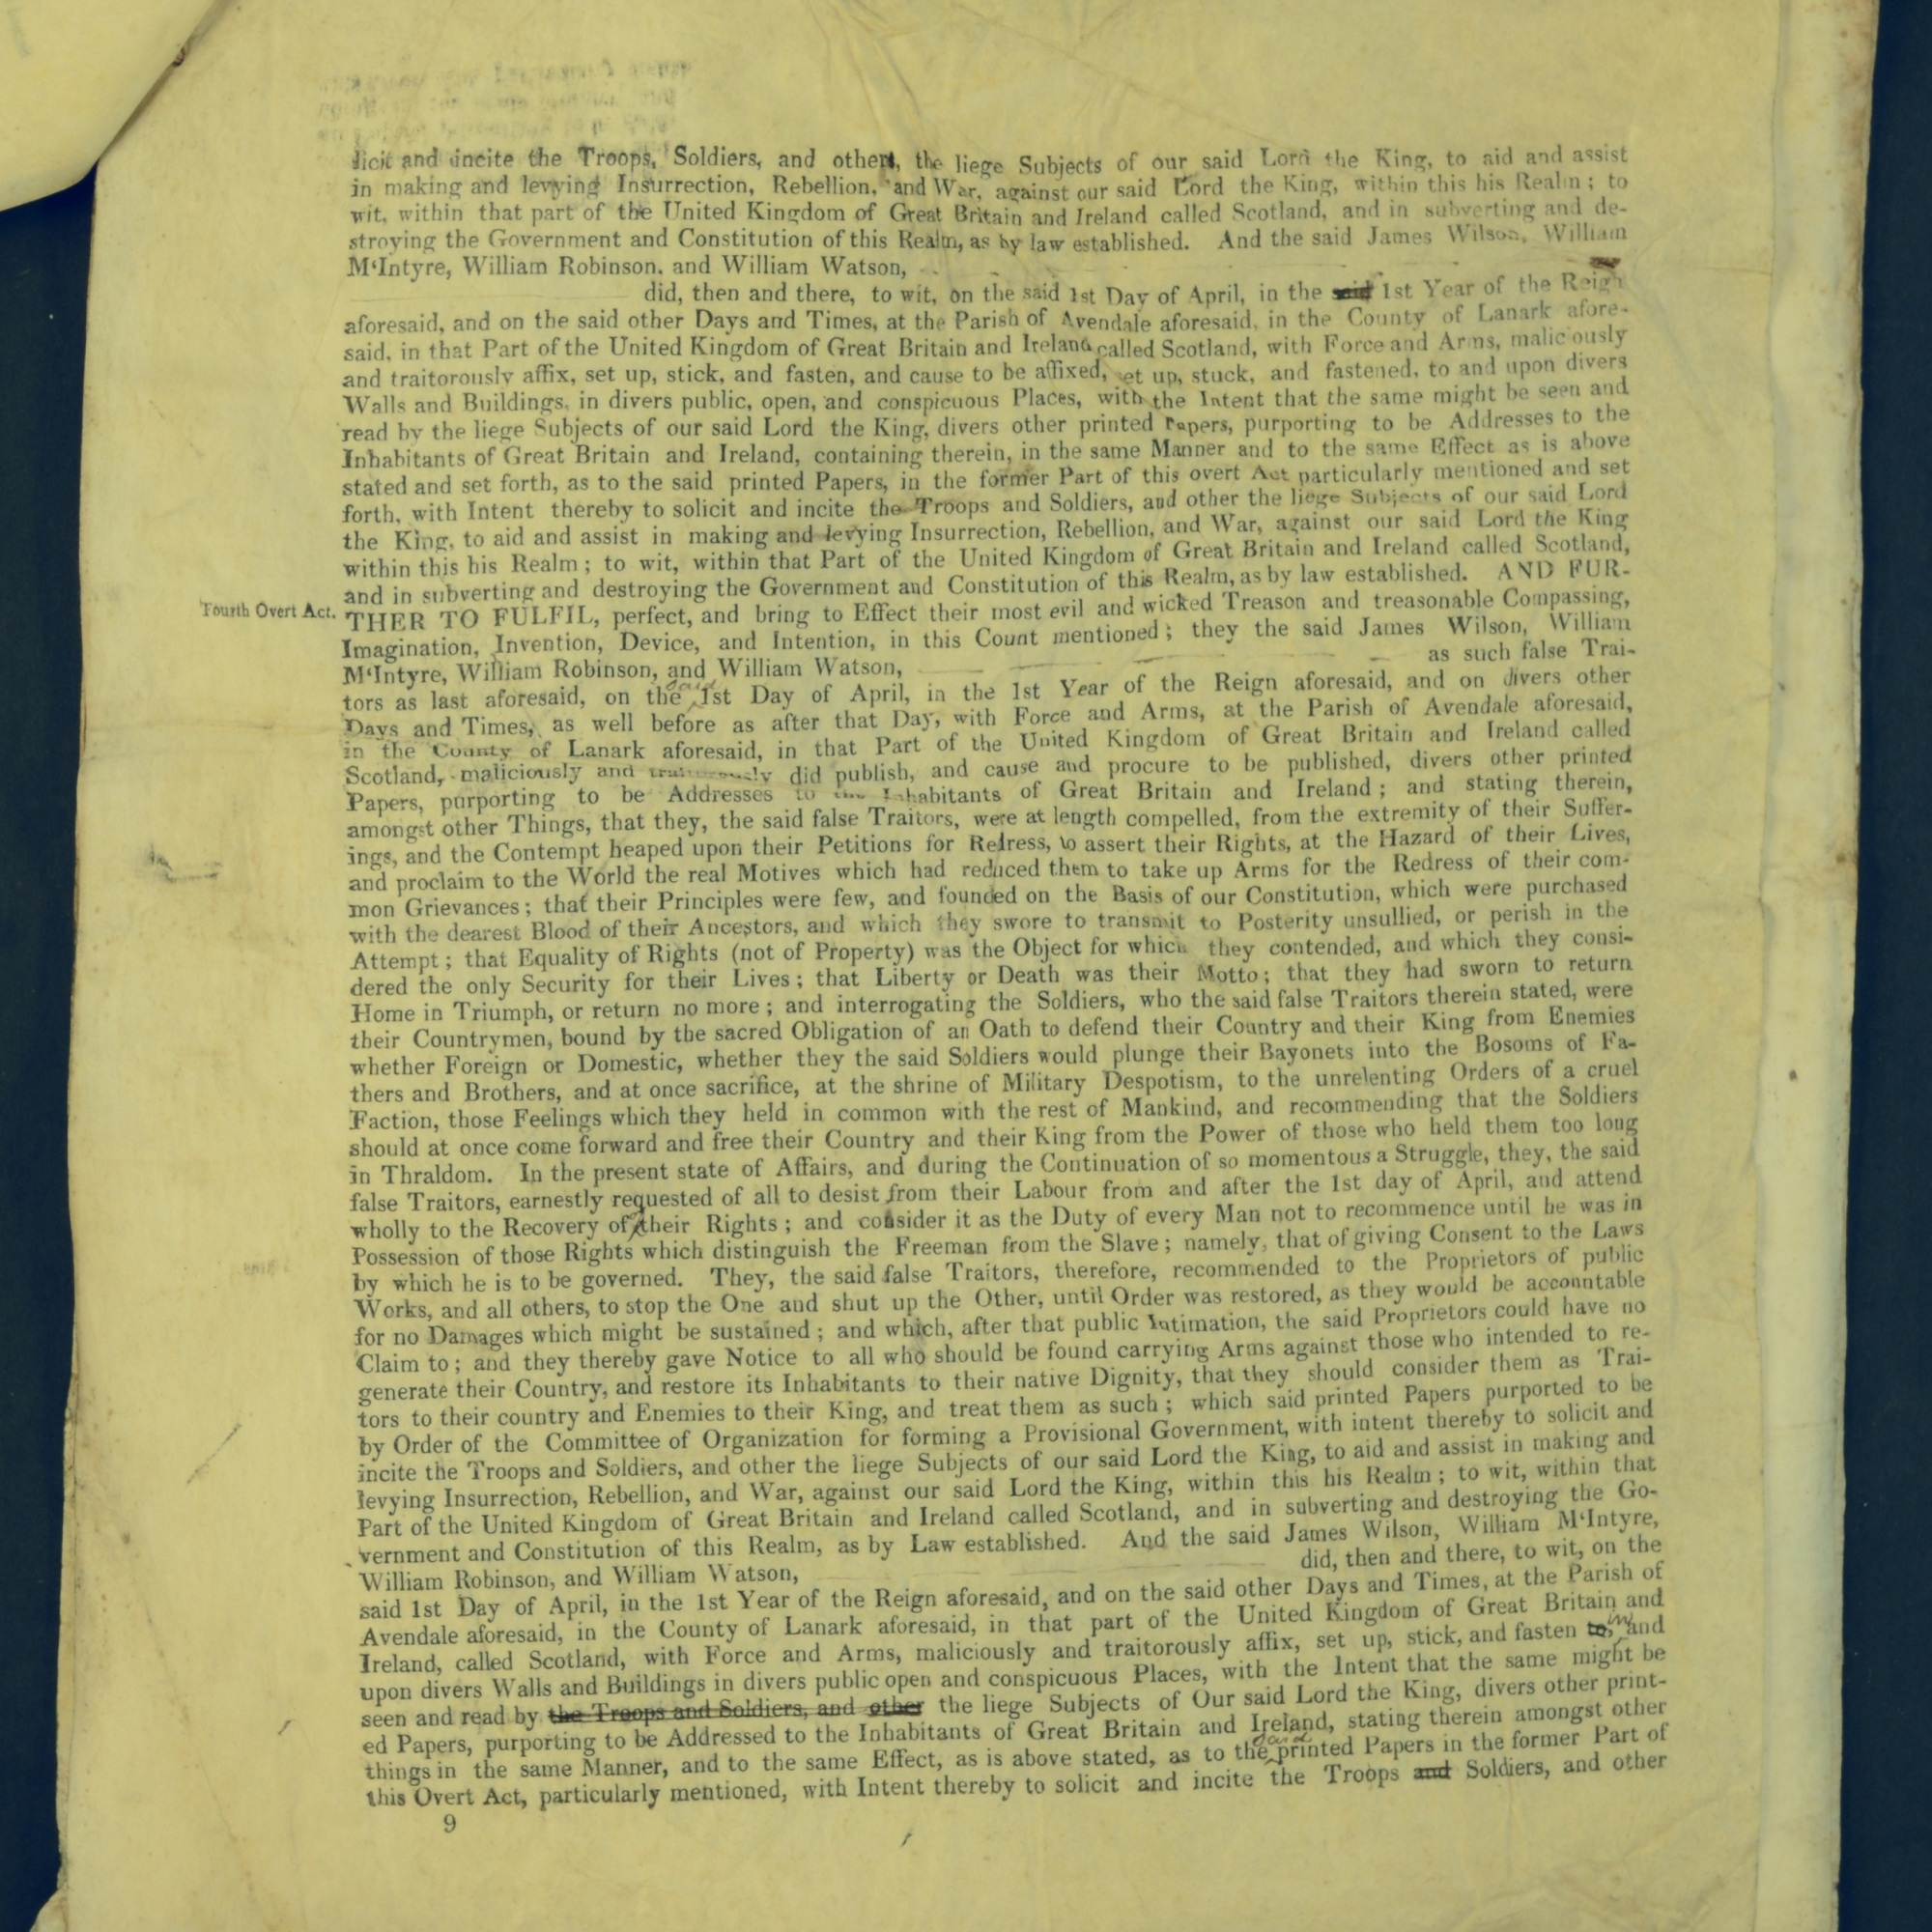 Treason Trials for the County of Lanark, the Strathaven Case. True bills found against four men, James Wilson, William McIntyre, William Robinson and William Watson. National Records of Scotland, Crown copyright, JC21/3/4 p9